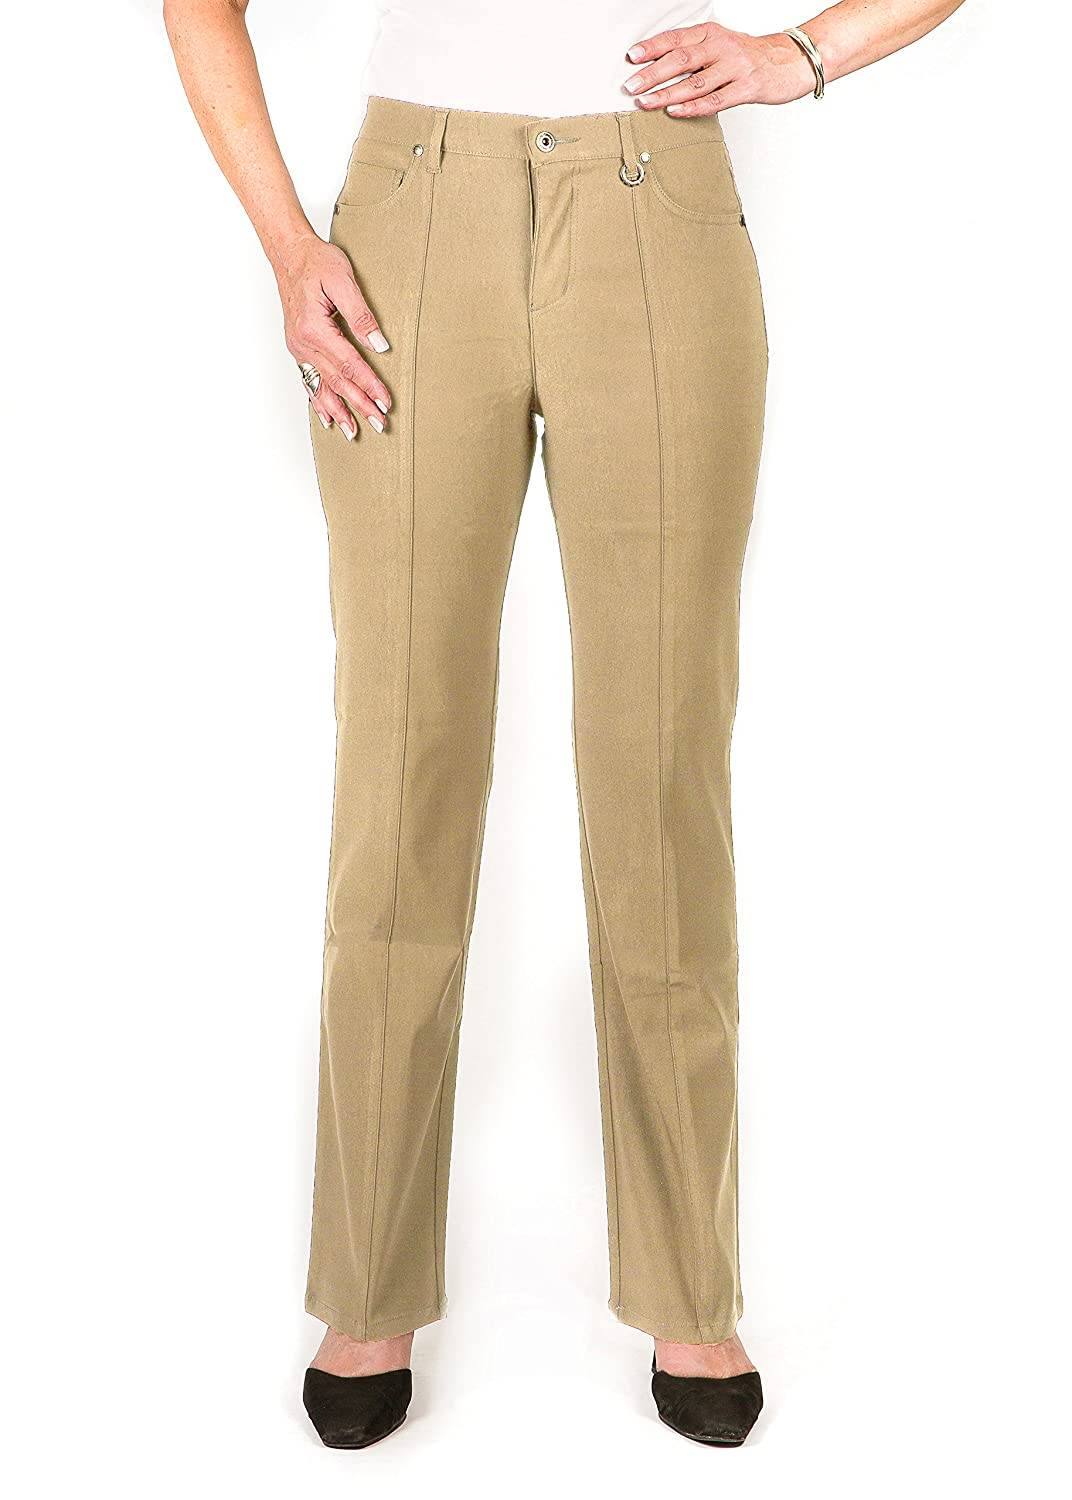 036d813c Simon Chang 5 Pocket Straight Leg Microtwill Pant Style# 3-5302 ...